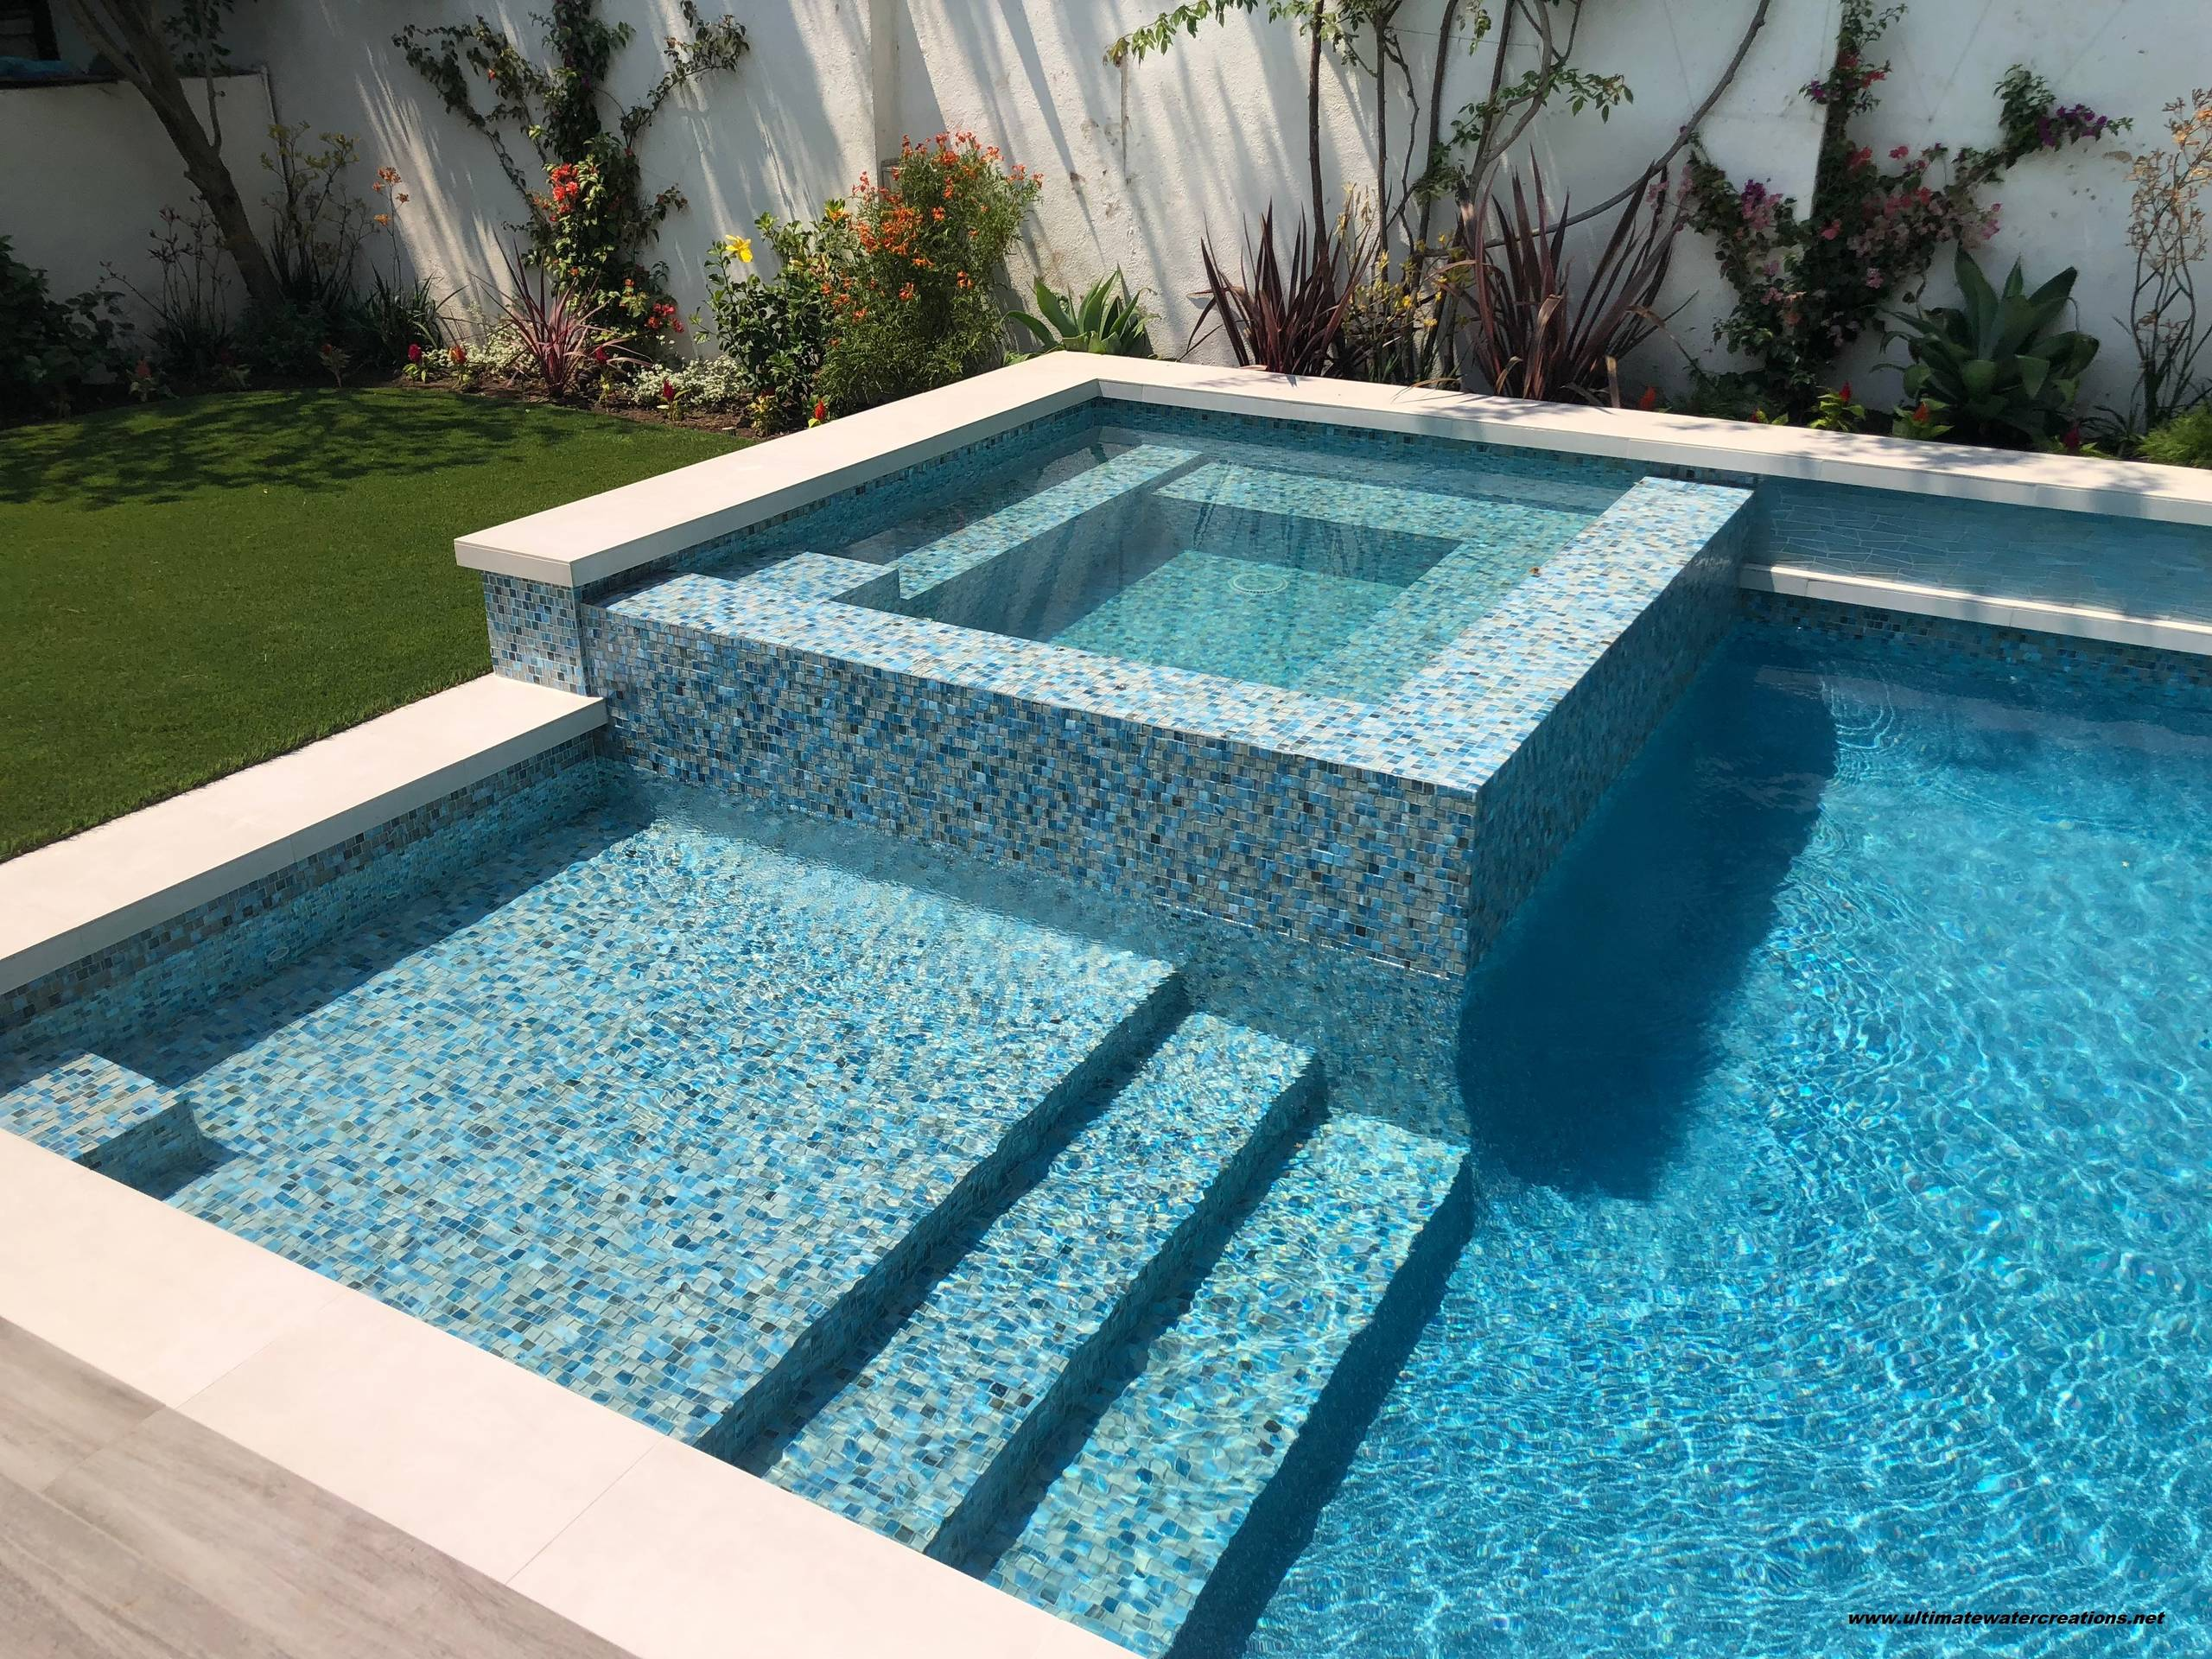 Pacific Palisades - Contemporary Rectangular Swimming Pool with Spa and Window